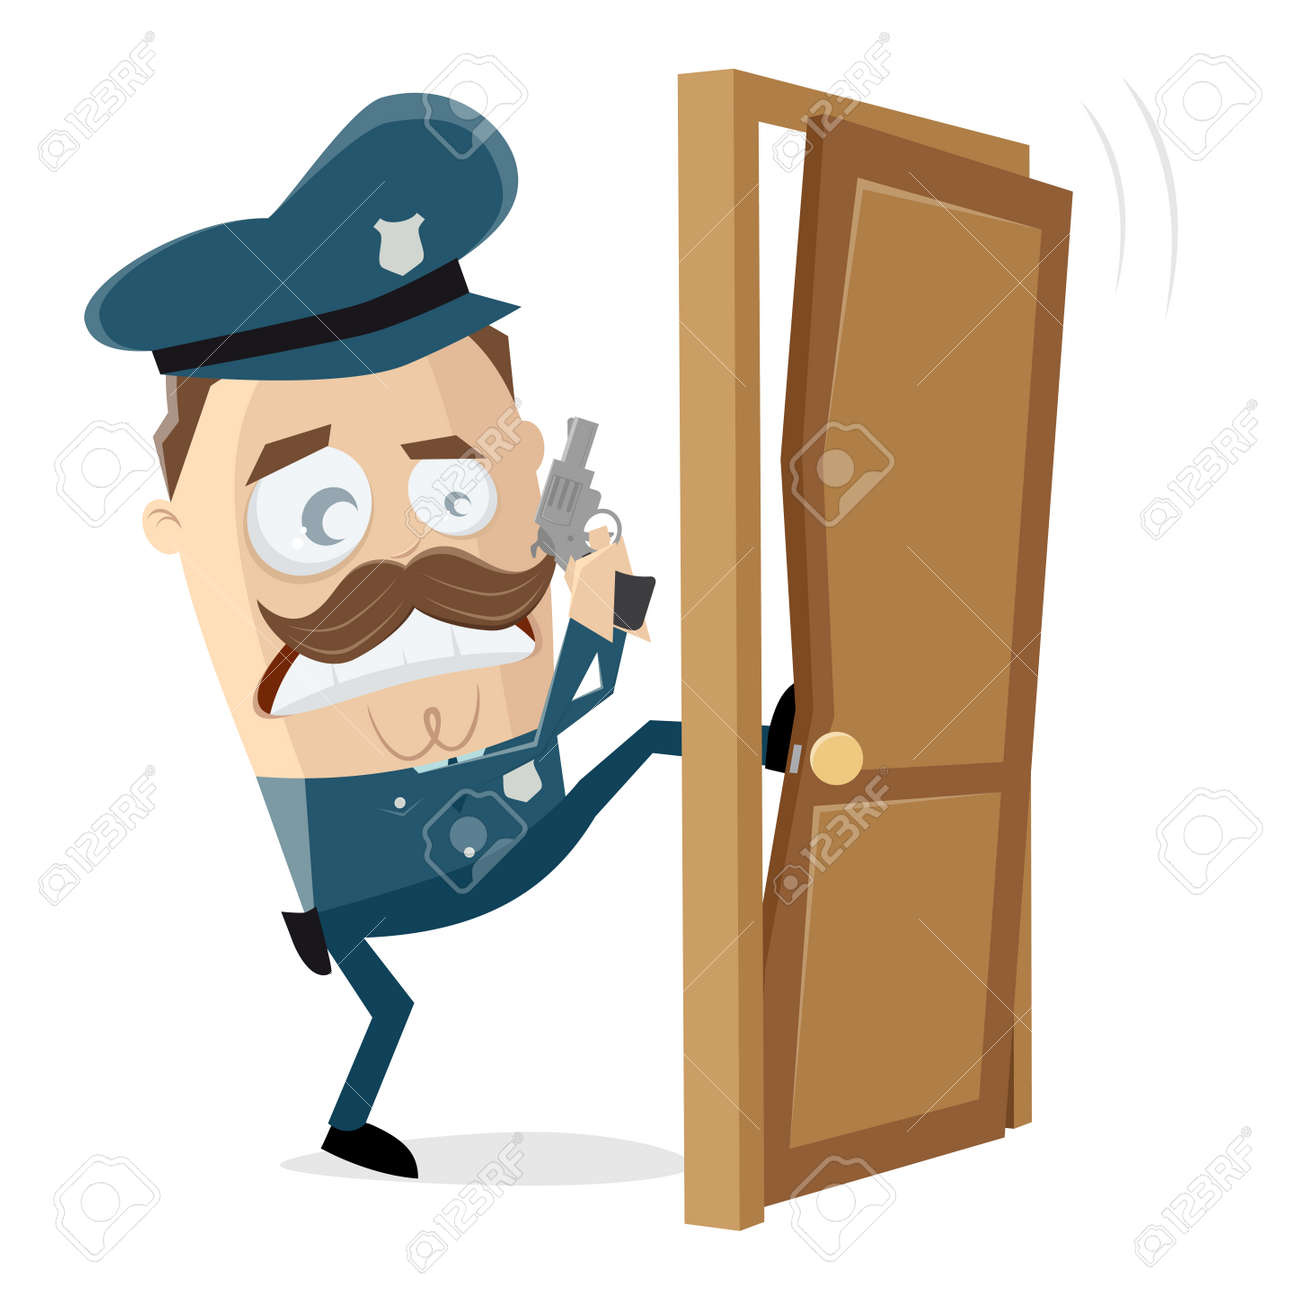 Angry Police Officer Kicking In The Door Royalty Free Cliparts Vectors And Stock Illustration Image 117238862